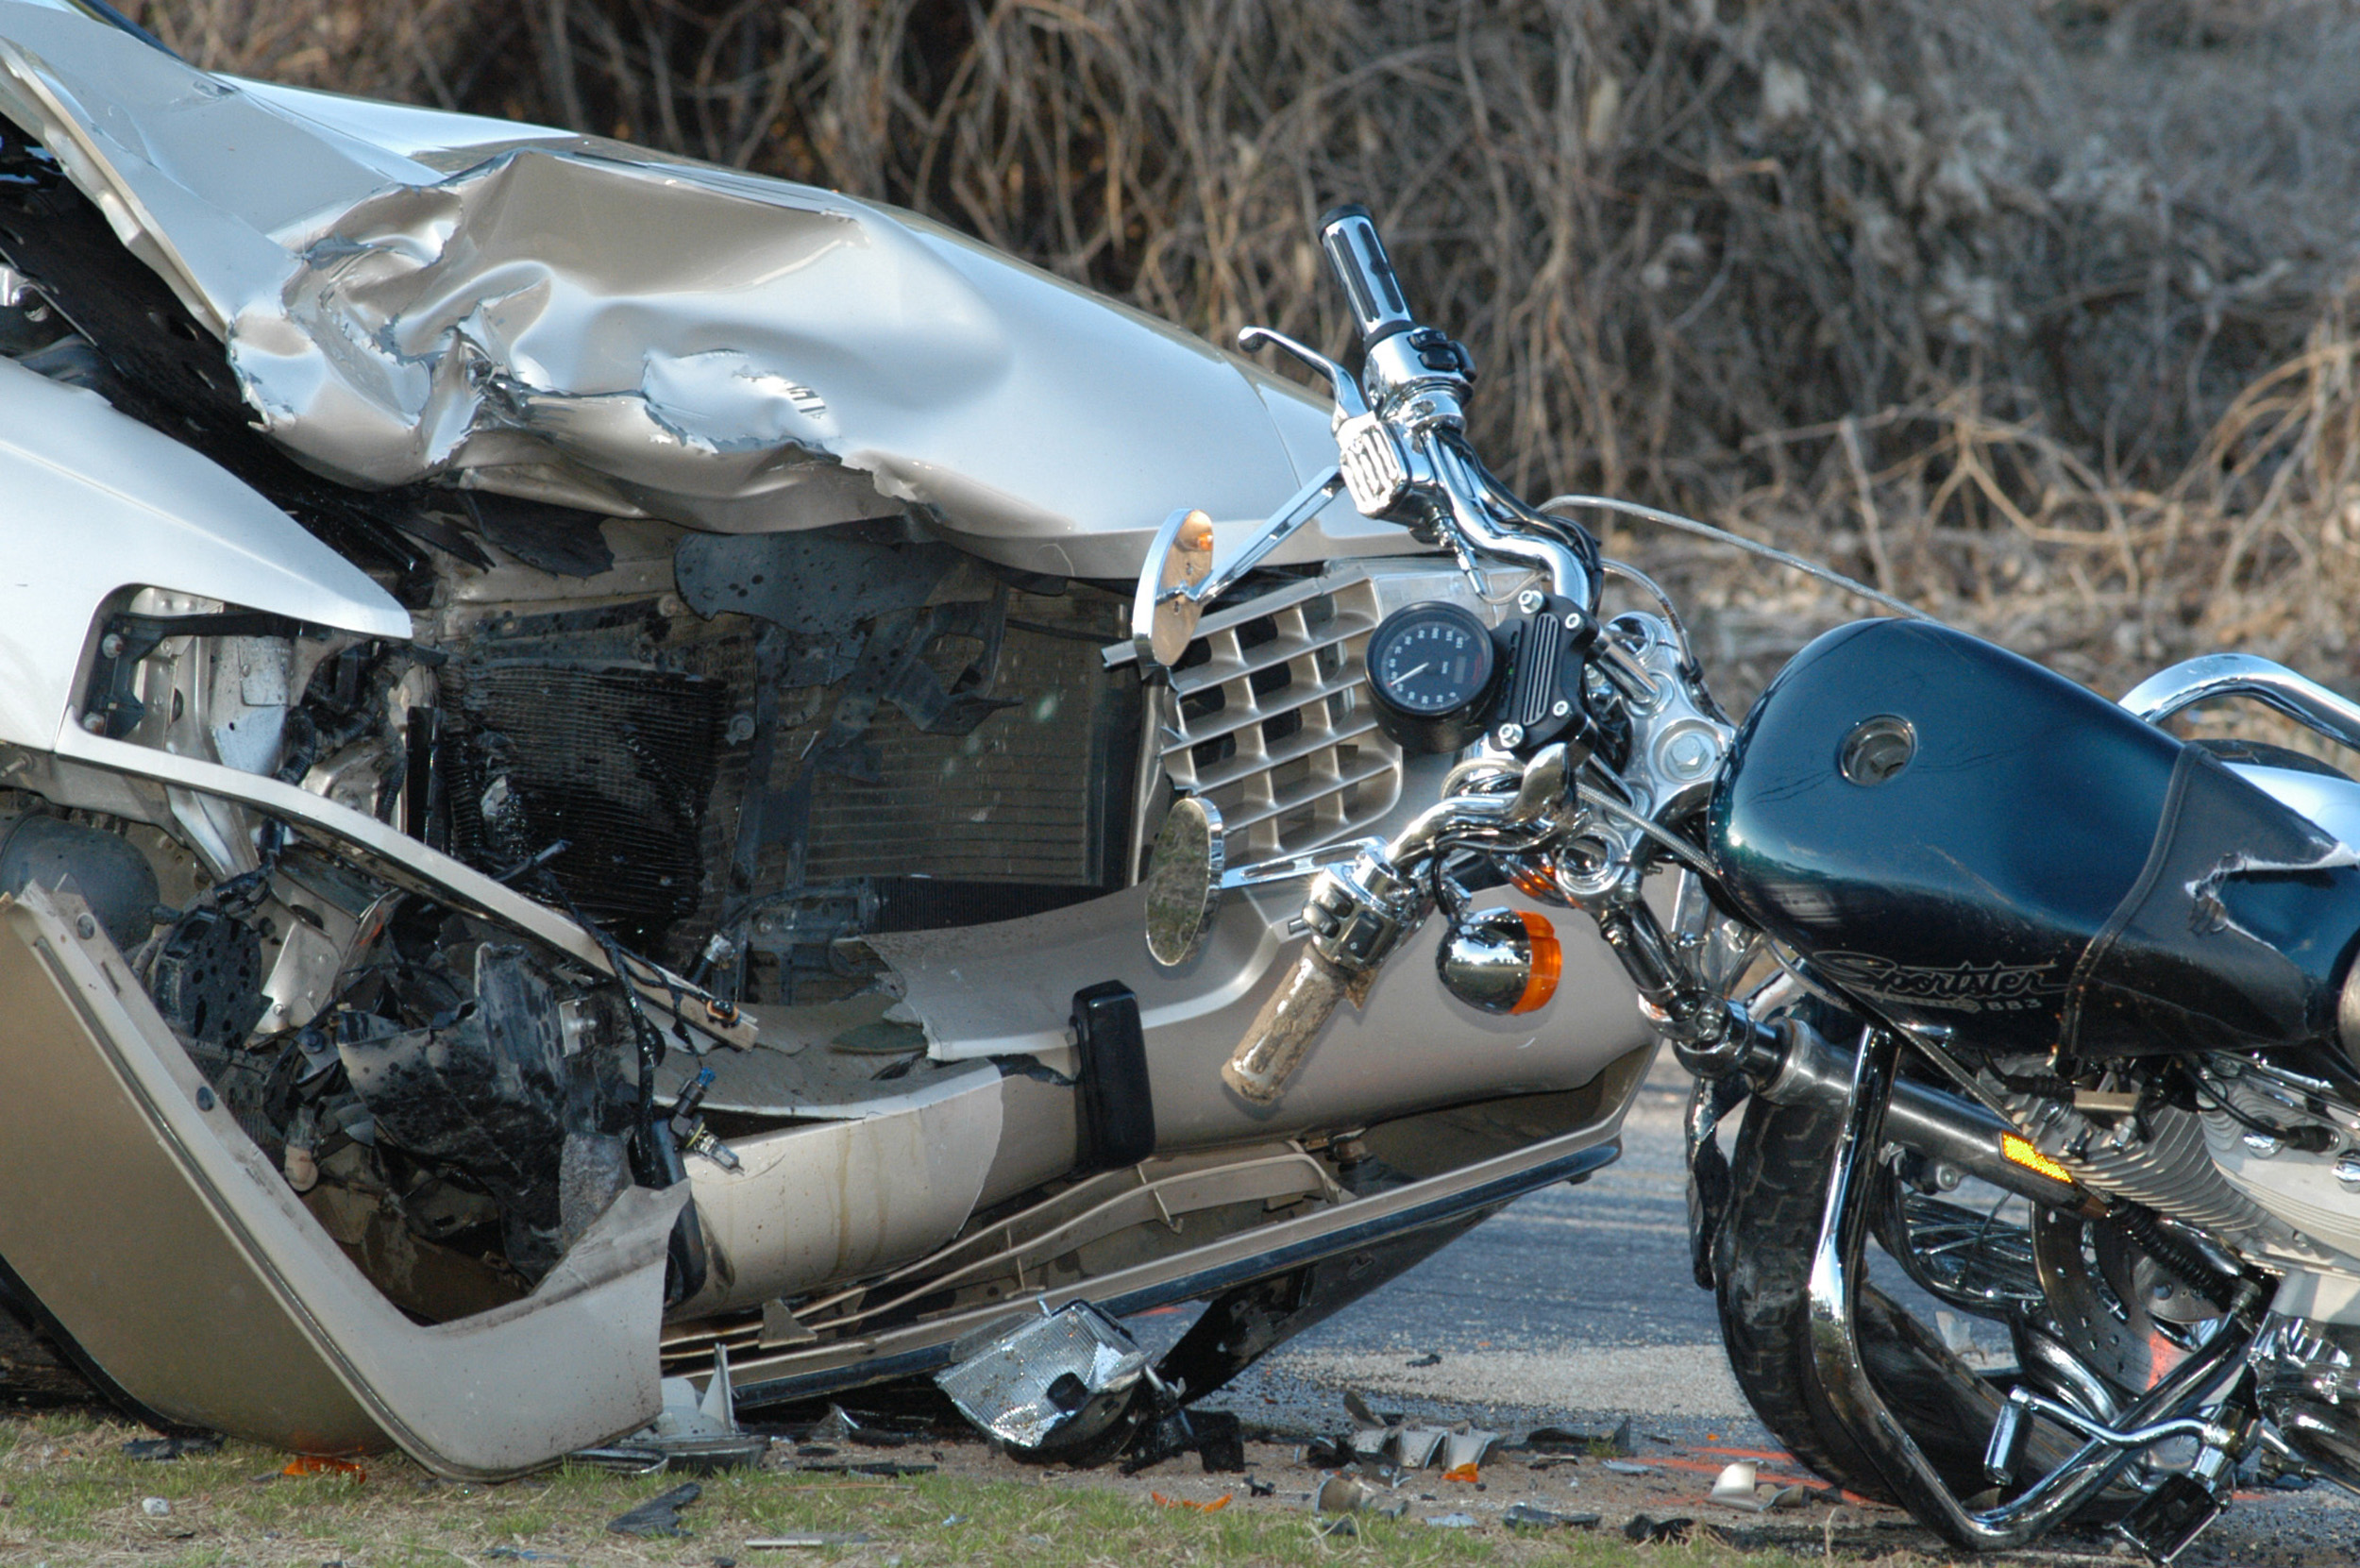 Car colliding with motorcycle motorcycle occupant needing a motorcycle or wrongful death attorney